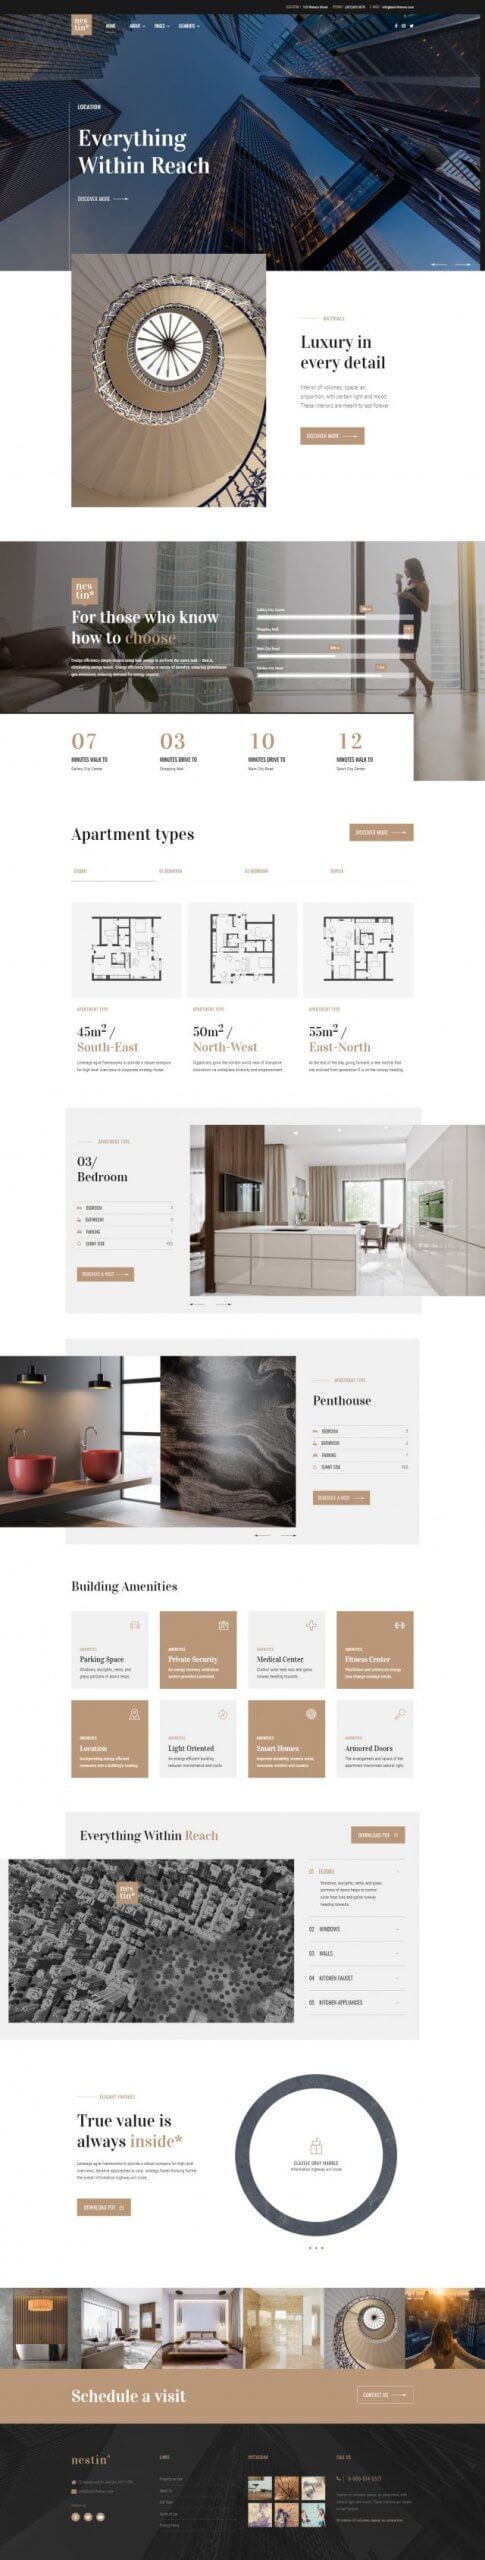 http://nestin.bold-themes.com/fancy/wp-content/uploads/sites/3/2020/03/Demo-02-scaled-1.jpg